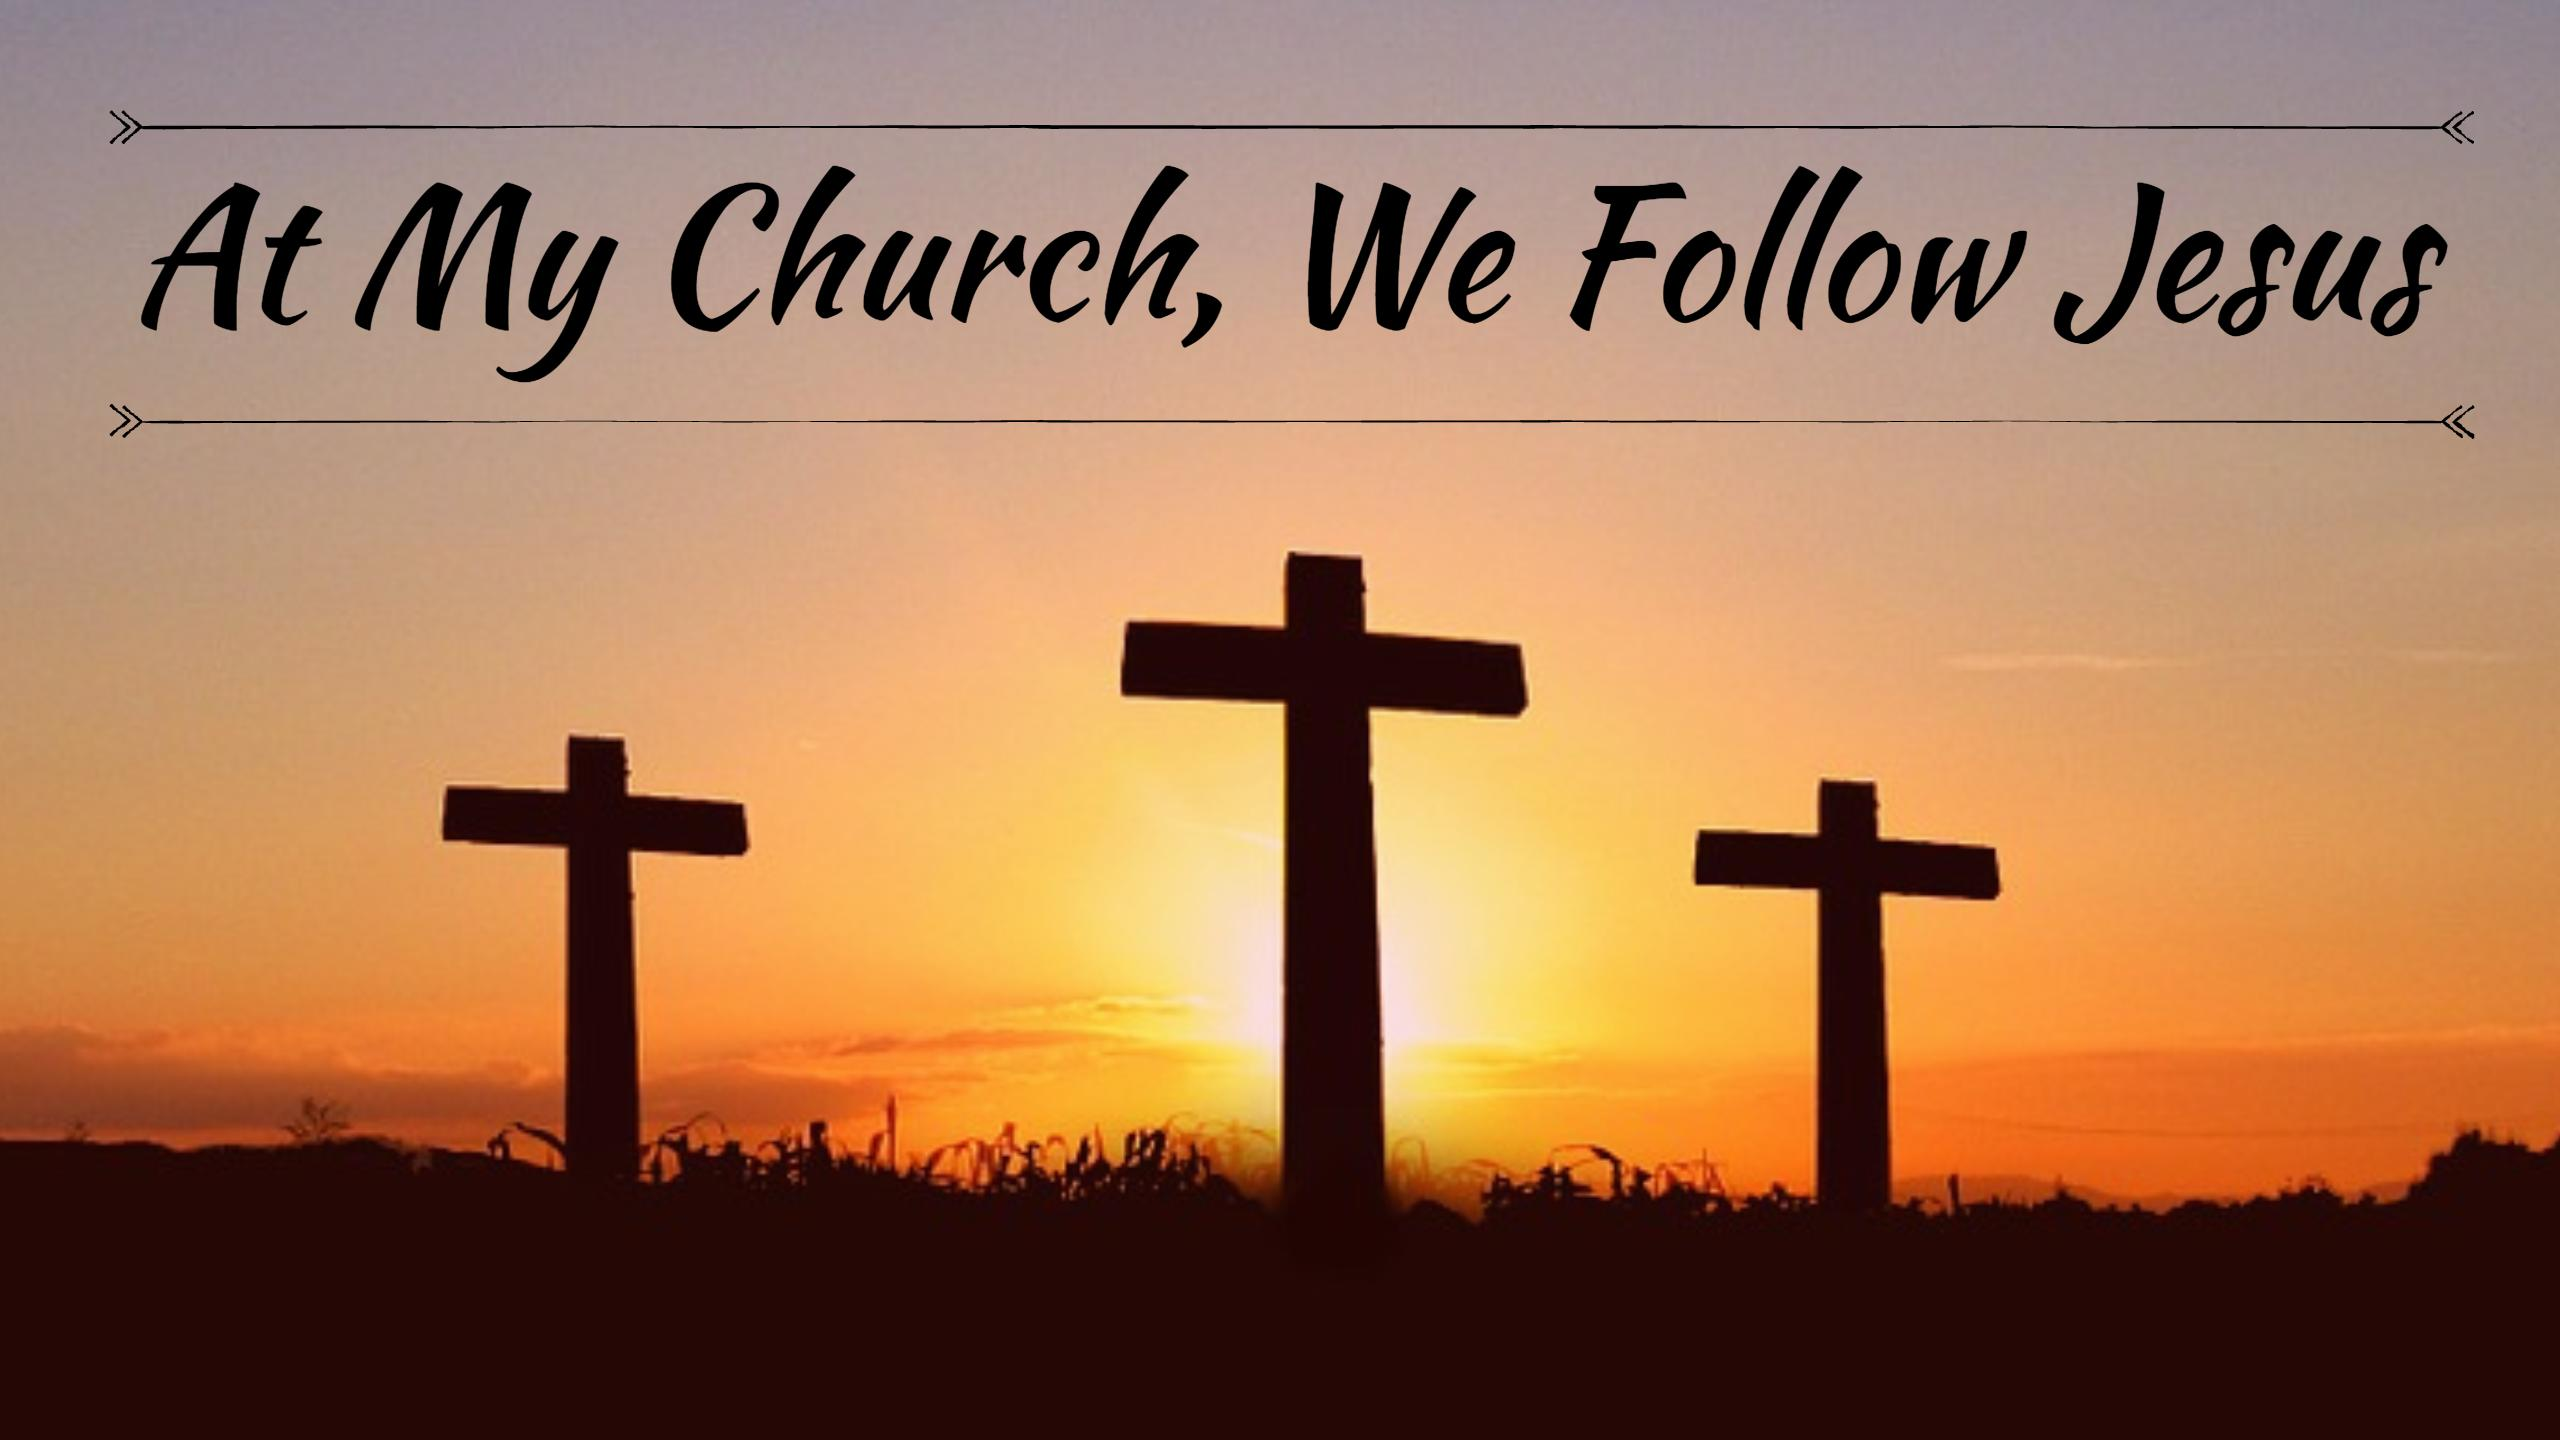 Series: At My Church We Follow Jesus